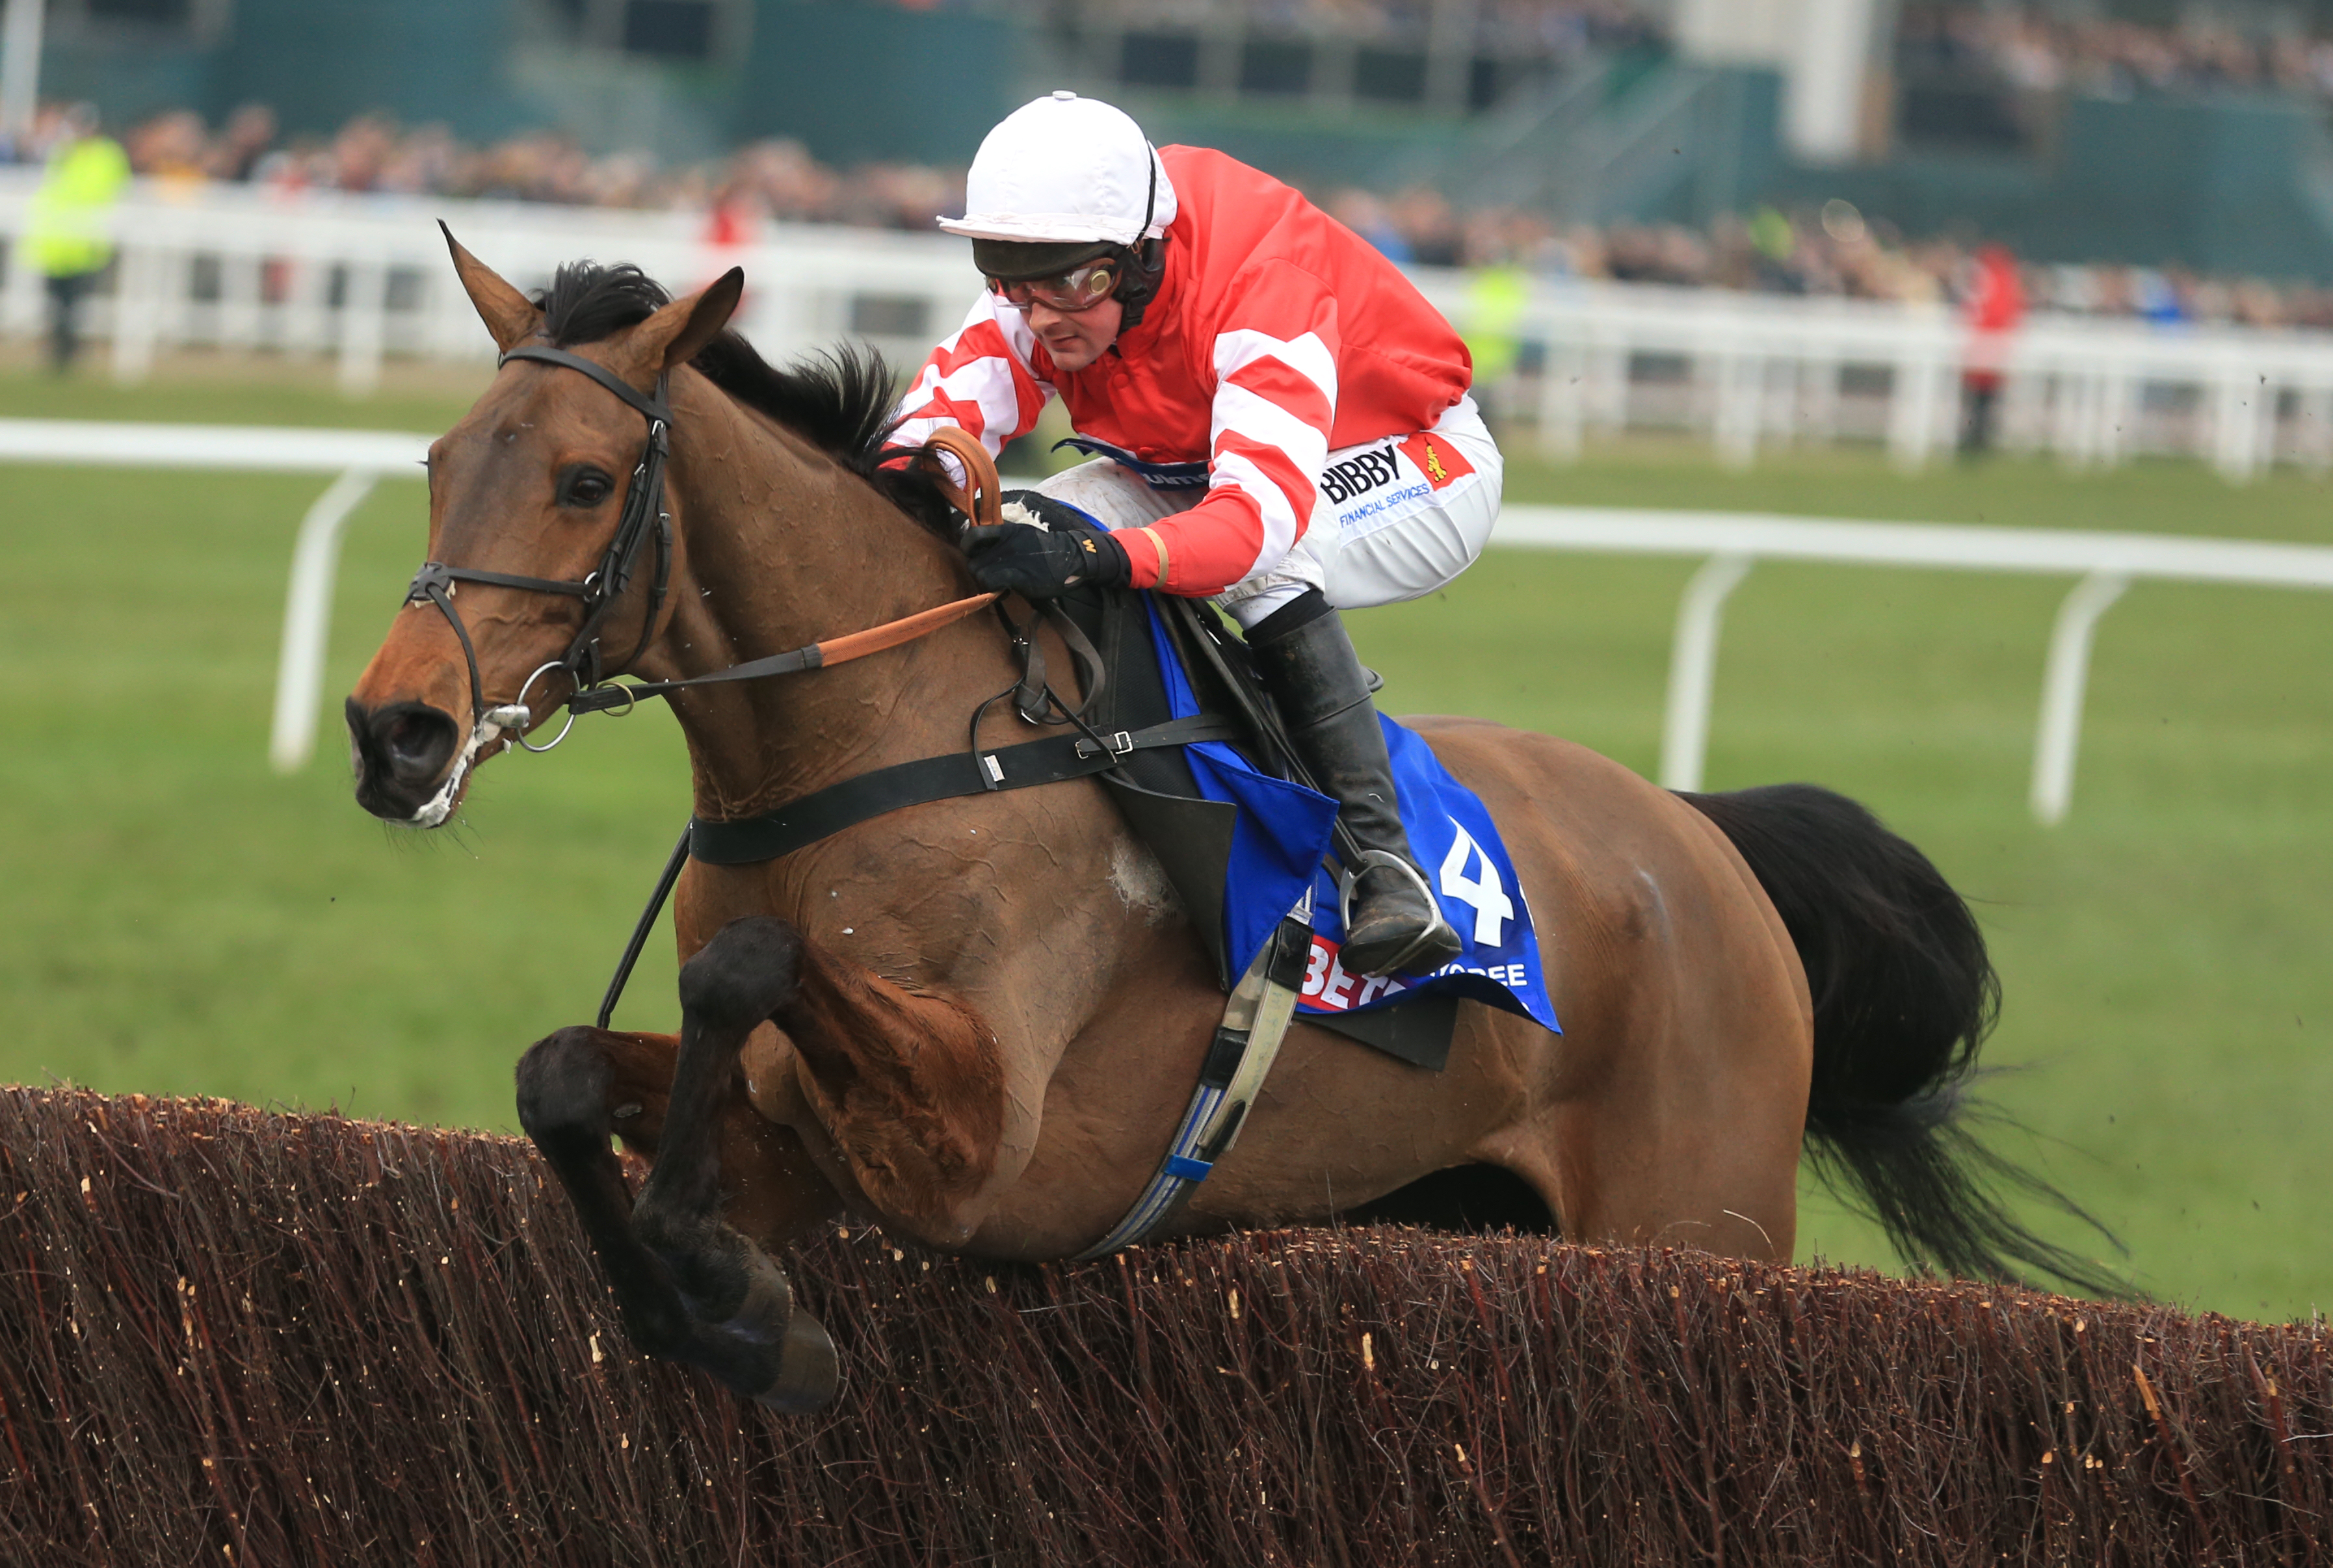 Coneygree ridden by Nico de Boinville jumps the last fence on his way to winning The Betfred Cheltenham Gold Cup Steeple Chase